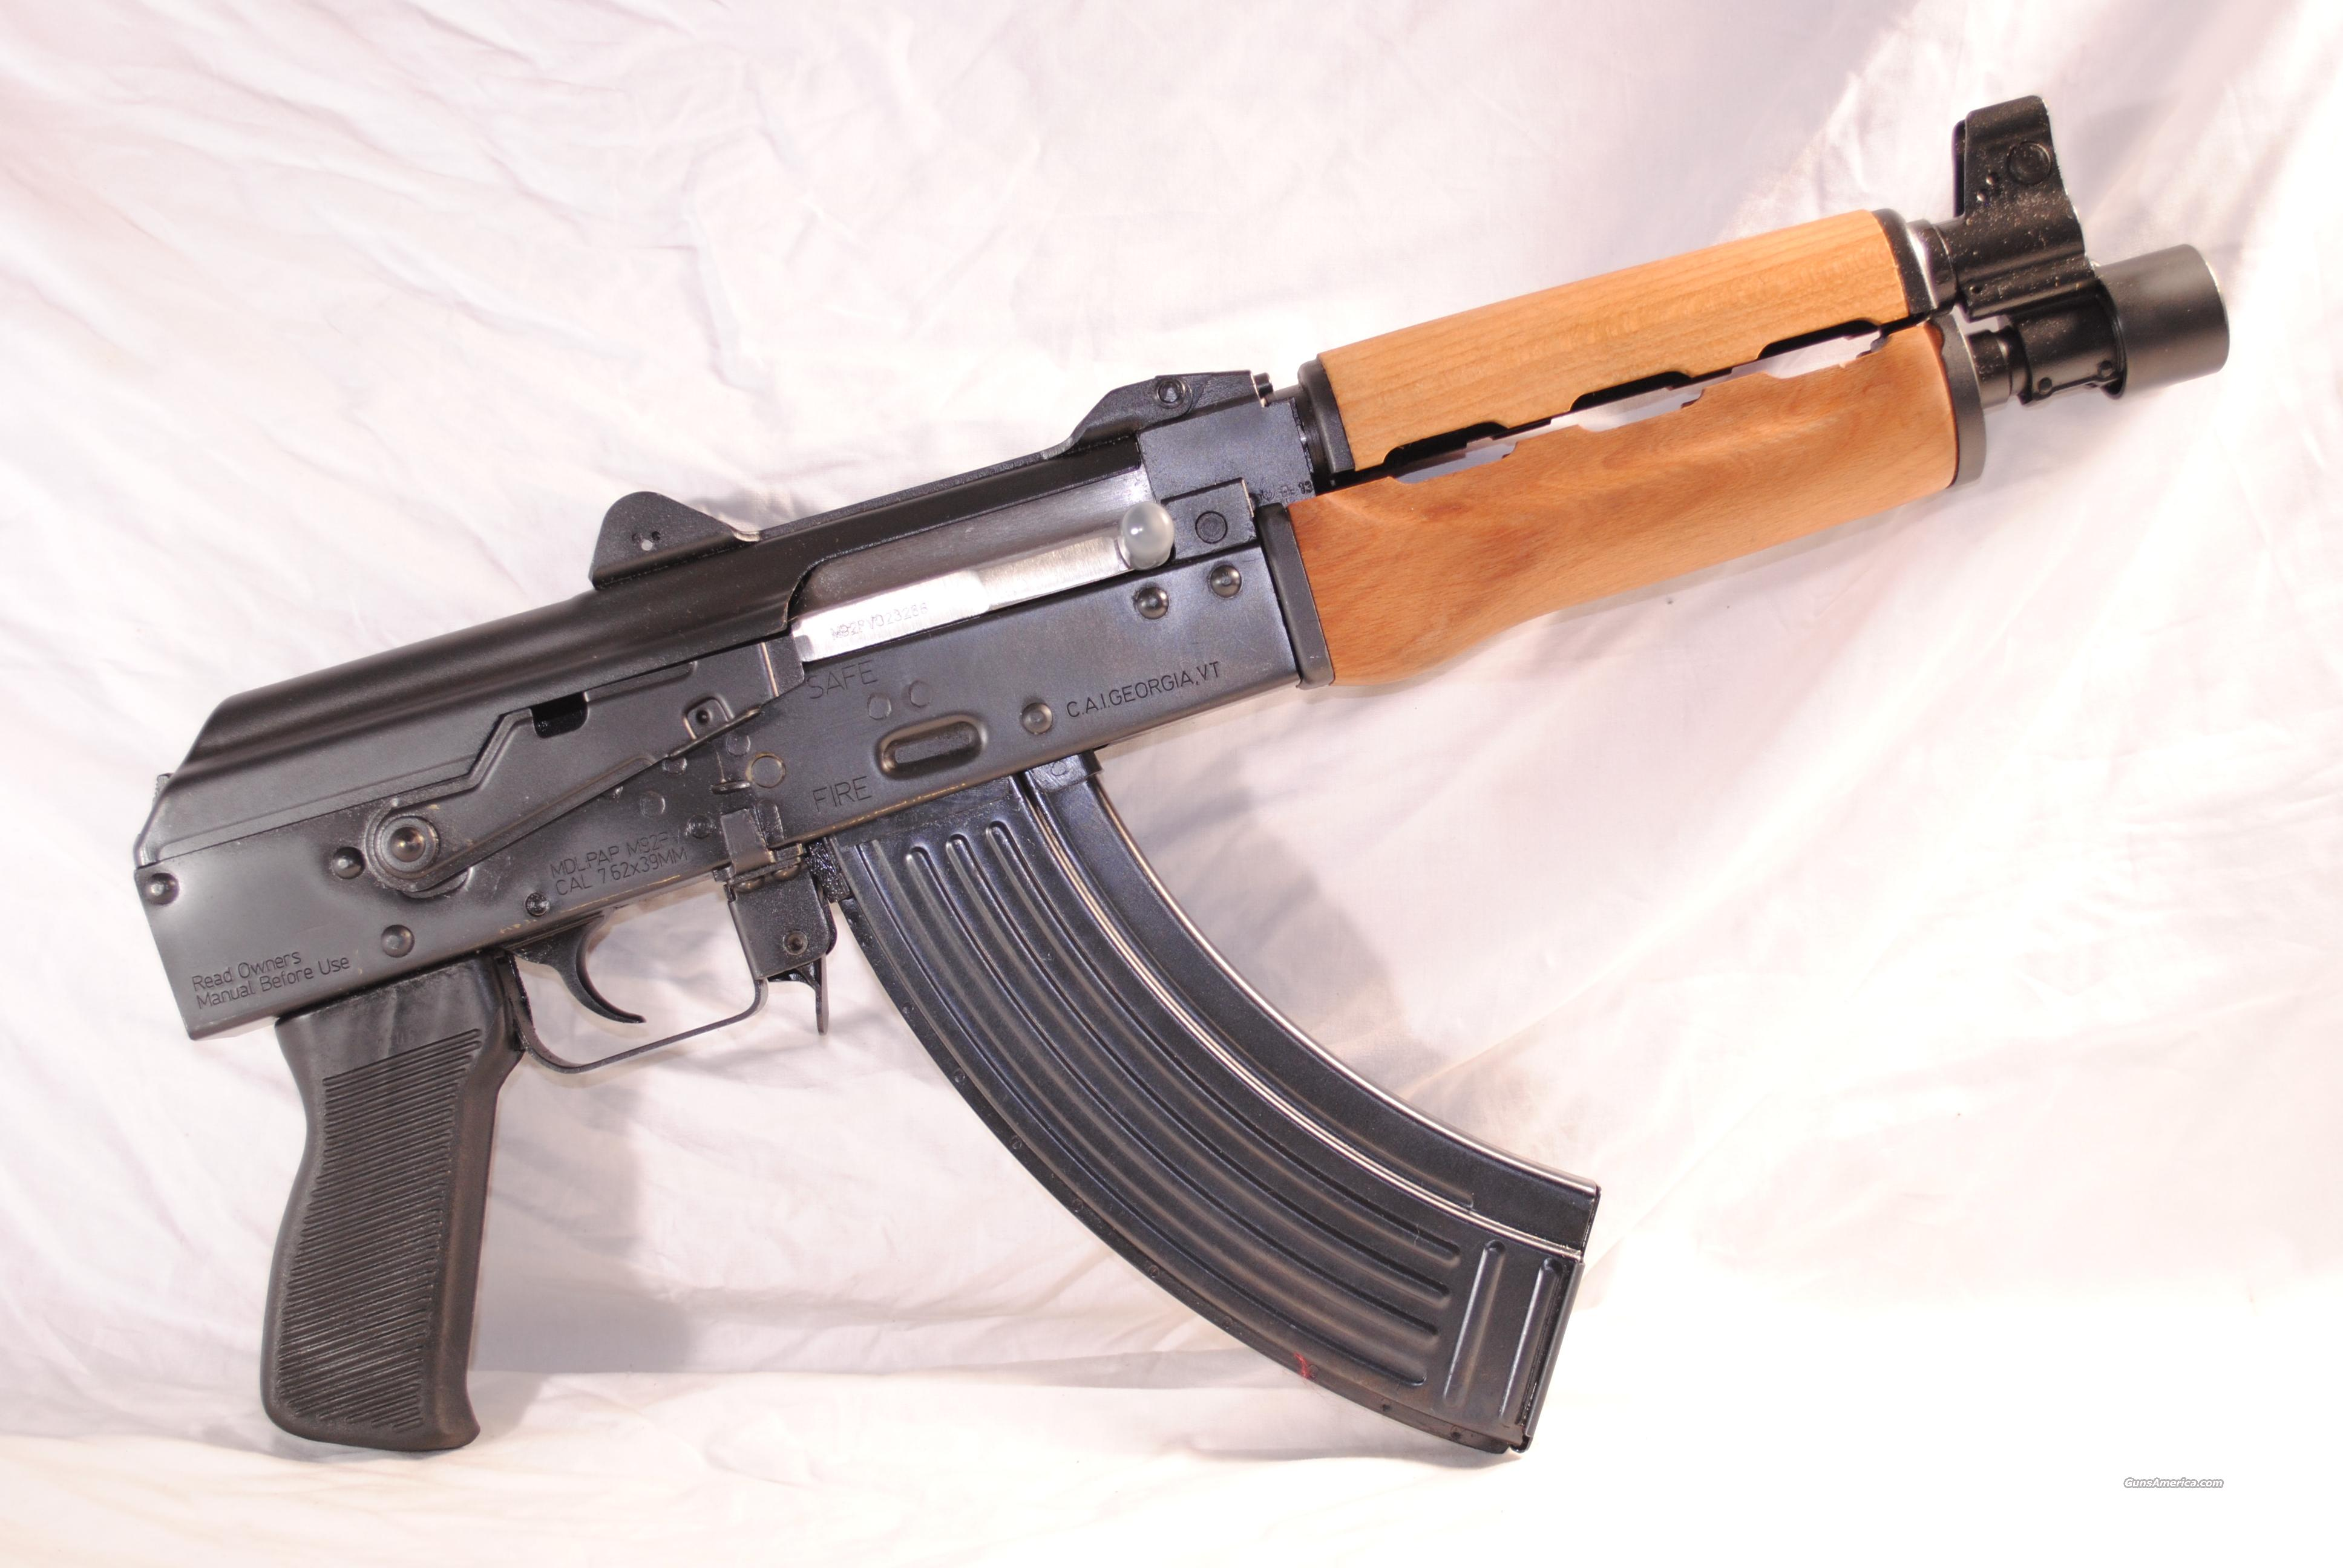 NEW! ZASTAVA PAP M92 PV AK PISTOL  Guns > Pistols > Century International Arms - Pistols > Pistols